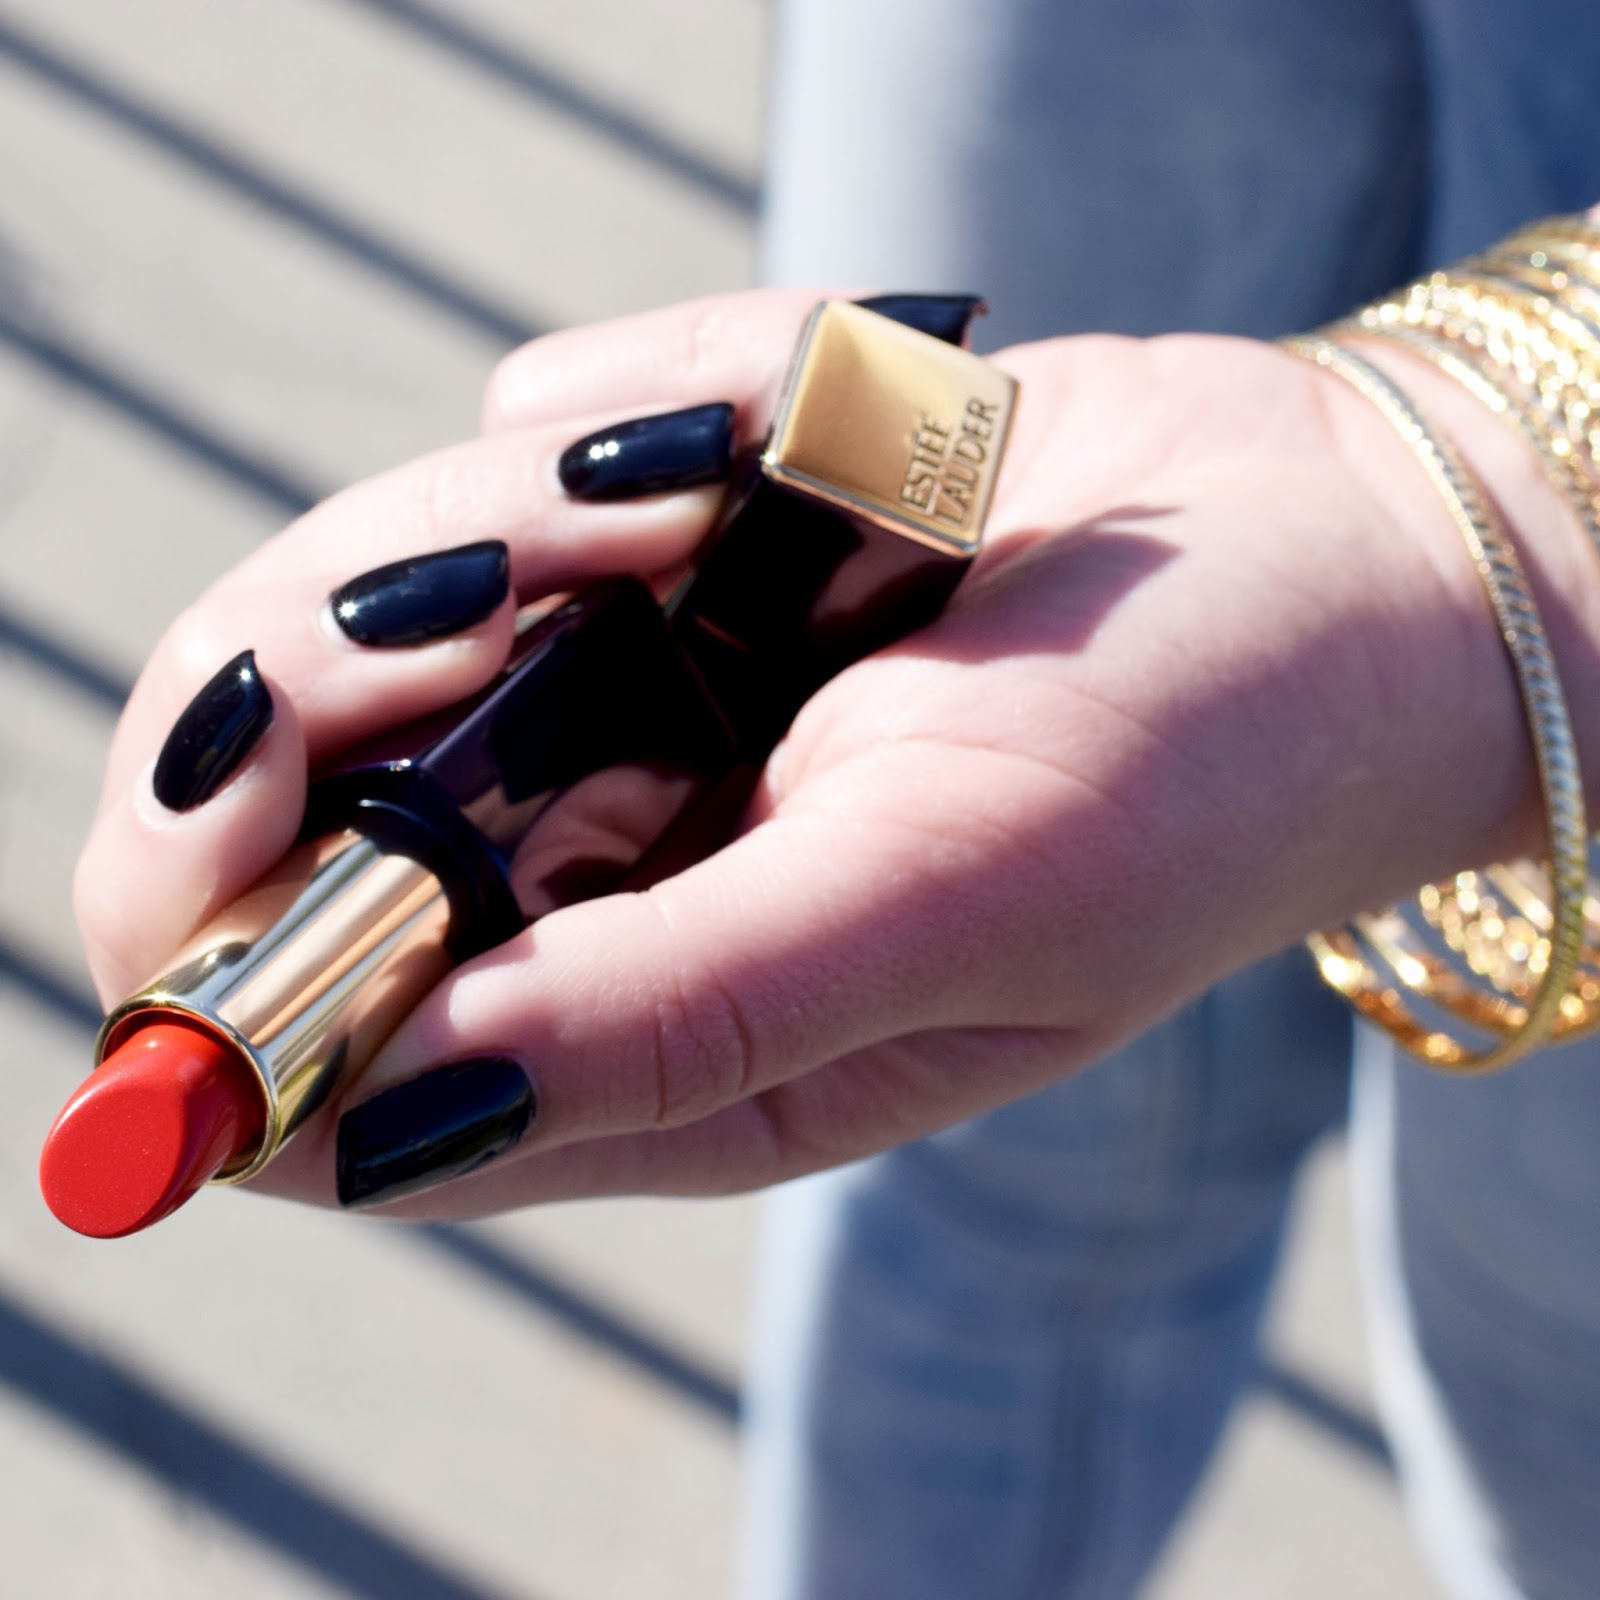 Pure Color Envy sculpting lipstick in vengeful red